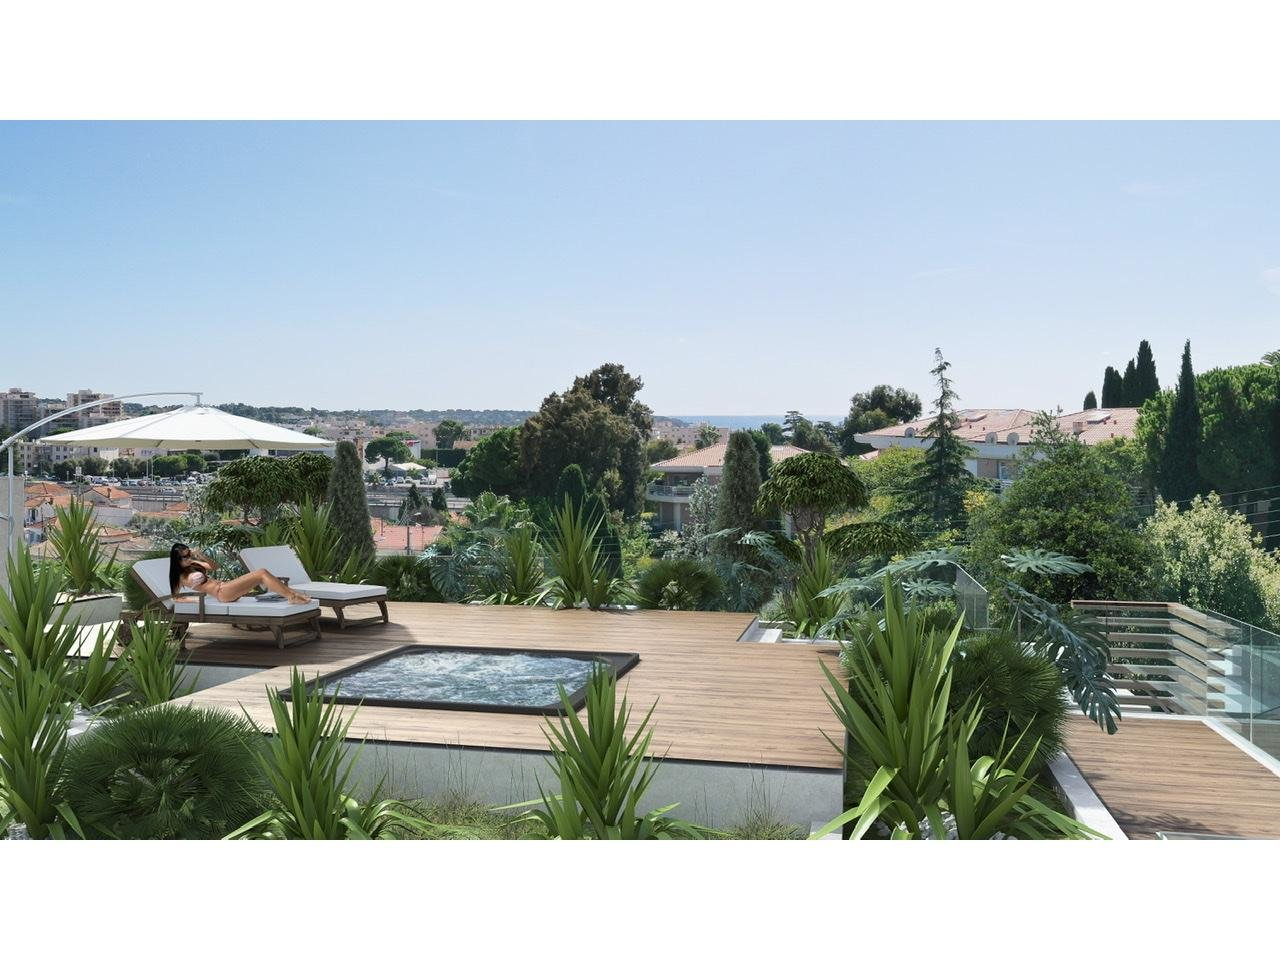 Appartement  4 Rooms 84.82m2  for sale   620 000 €